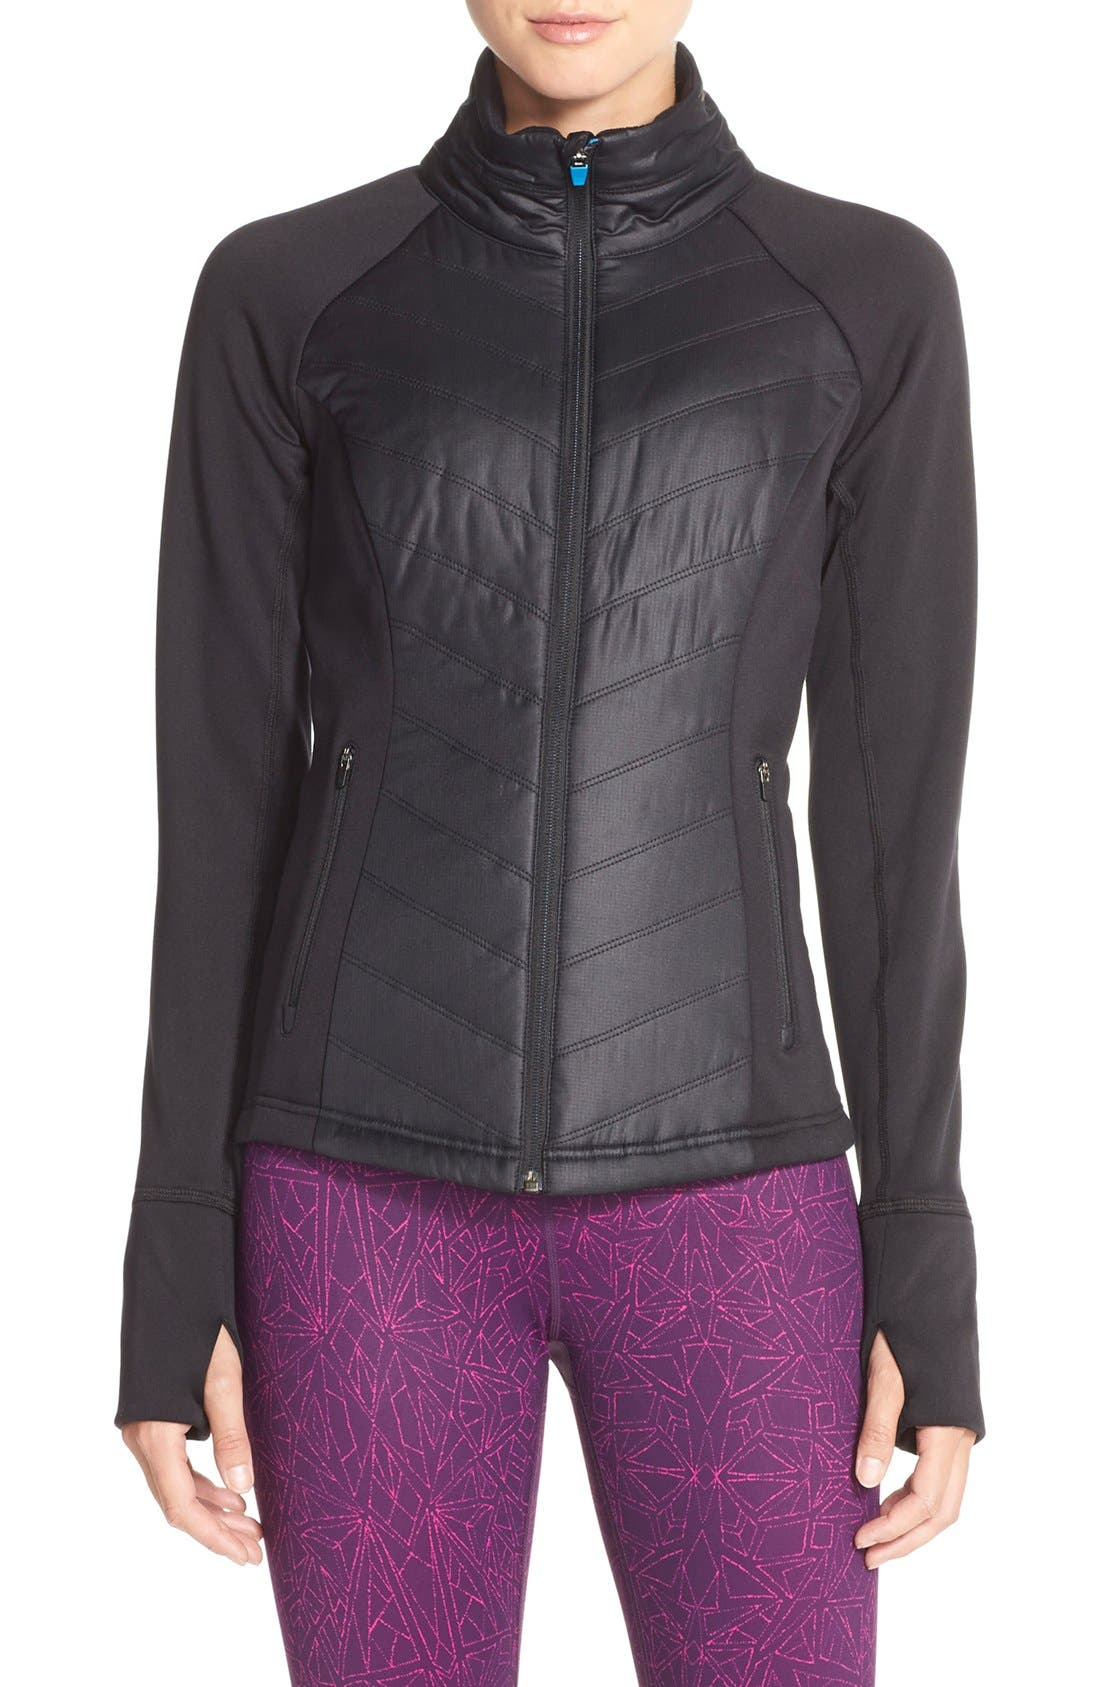 Zelfusion Reflective Quilted Jacket,                             Main thumbnail 1, color,                             001